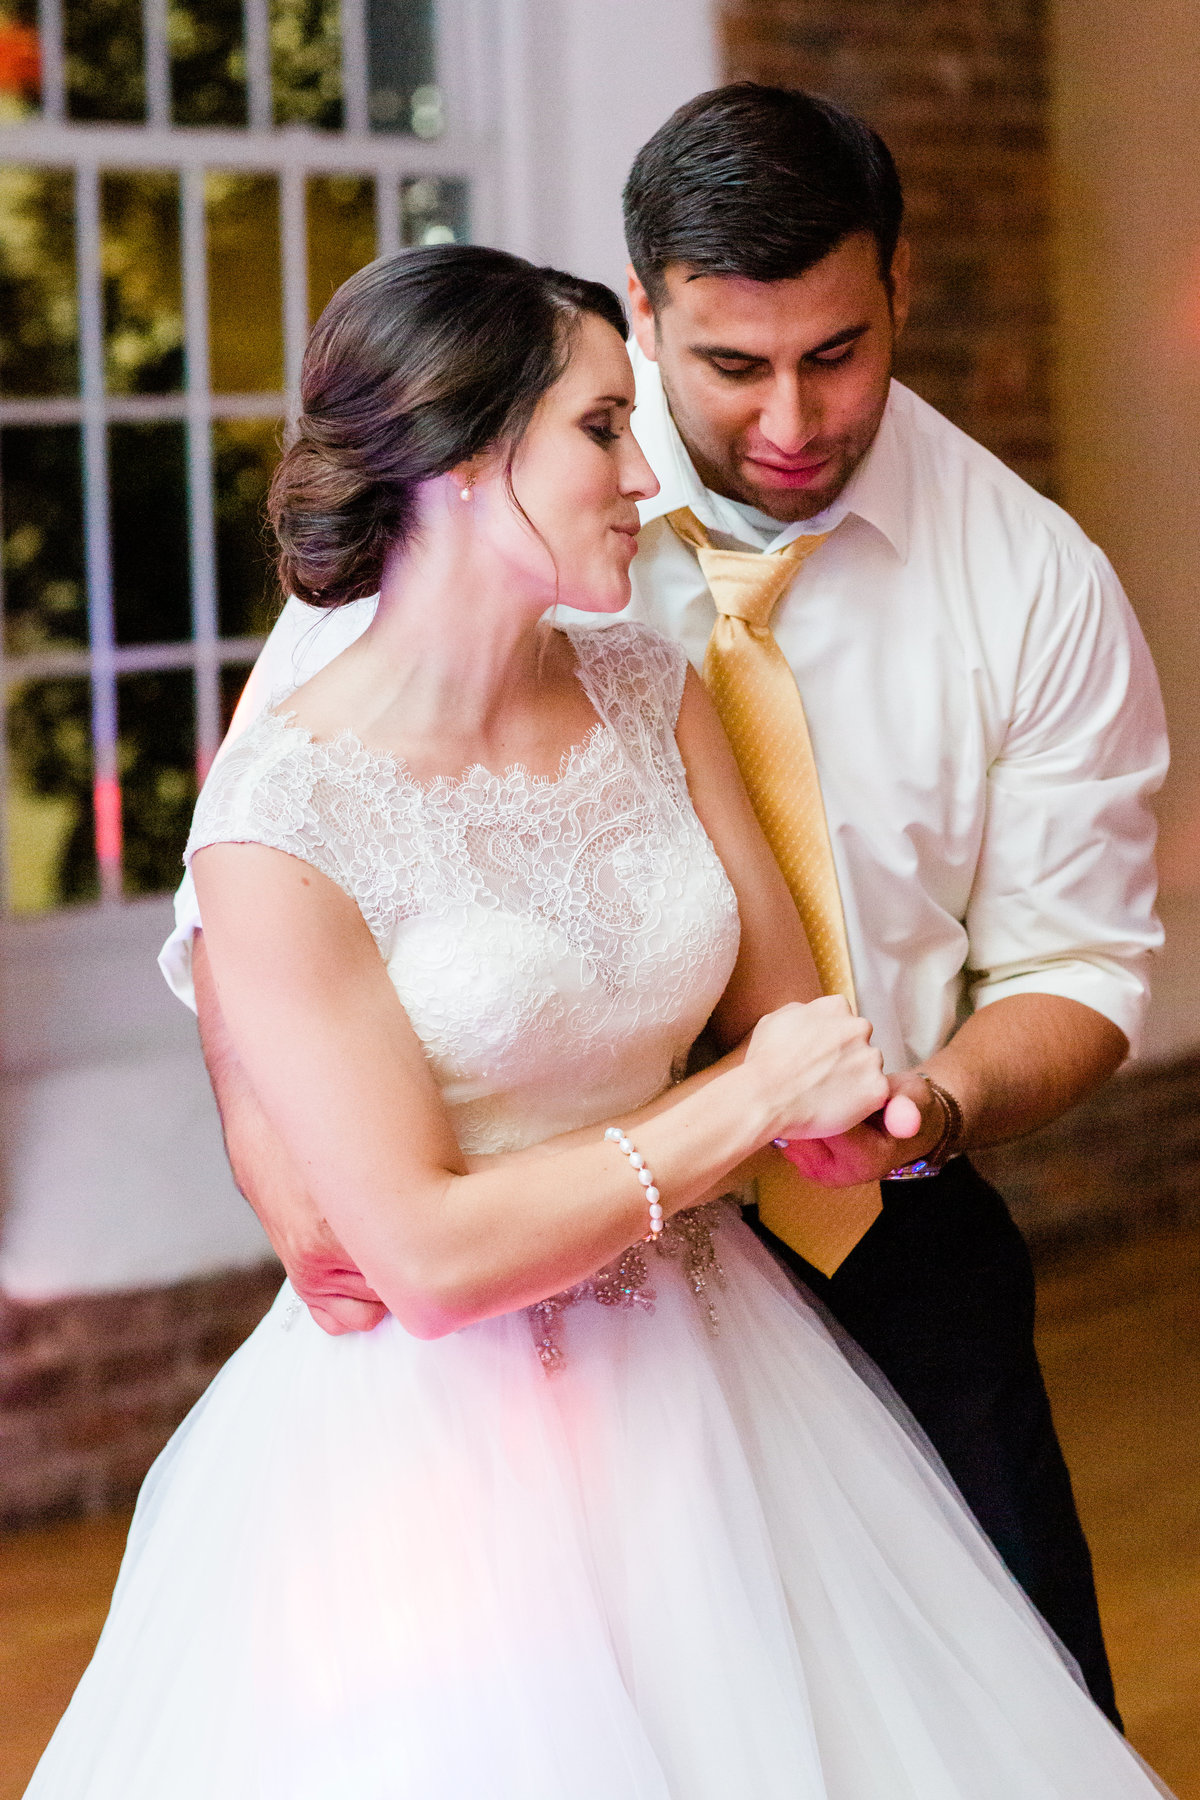 Danielle-Defayette-Photography-Revolution-Mill-Events-Wedding-Greensboro-NC-58